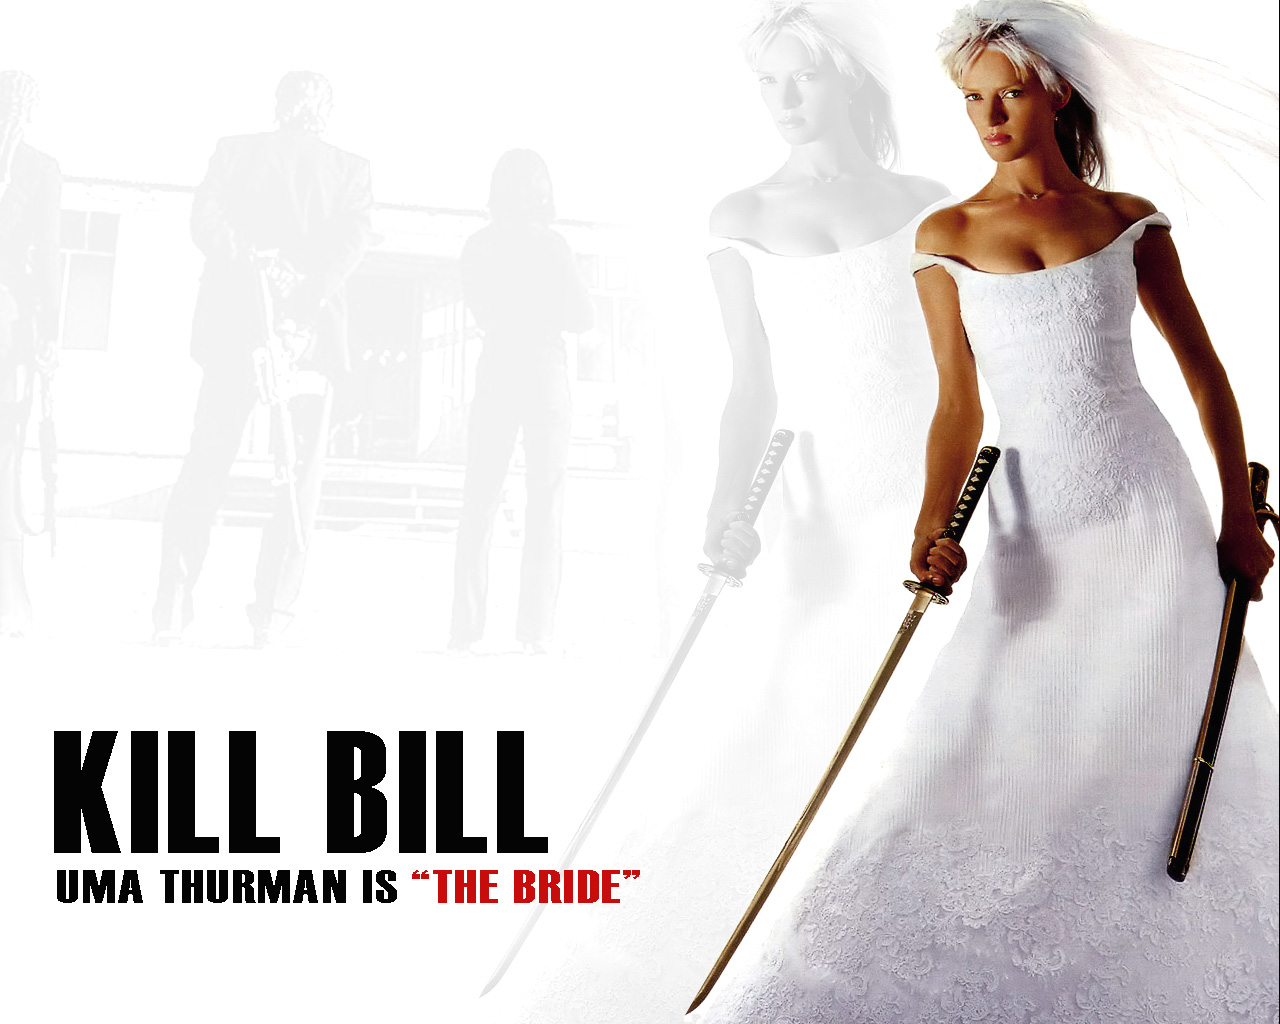 Wallpaper Kill Bill uma thurman